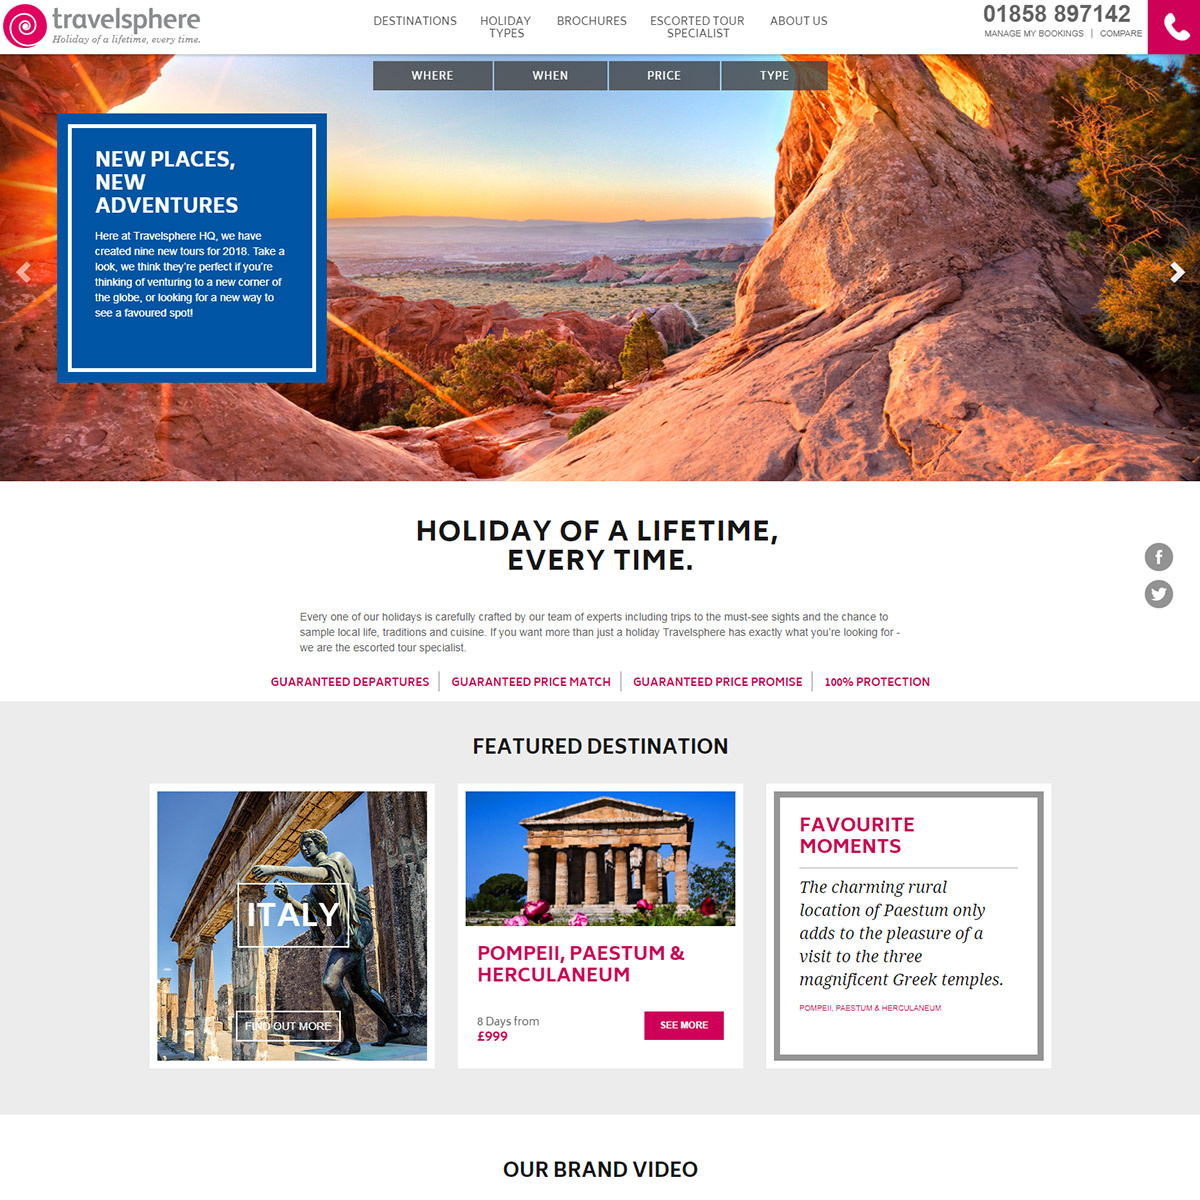 Travelsphere website re-brand